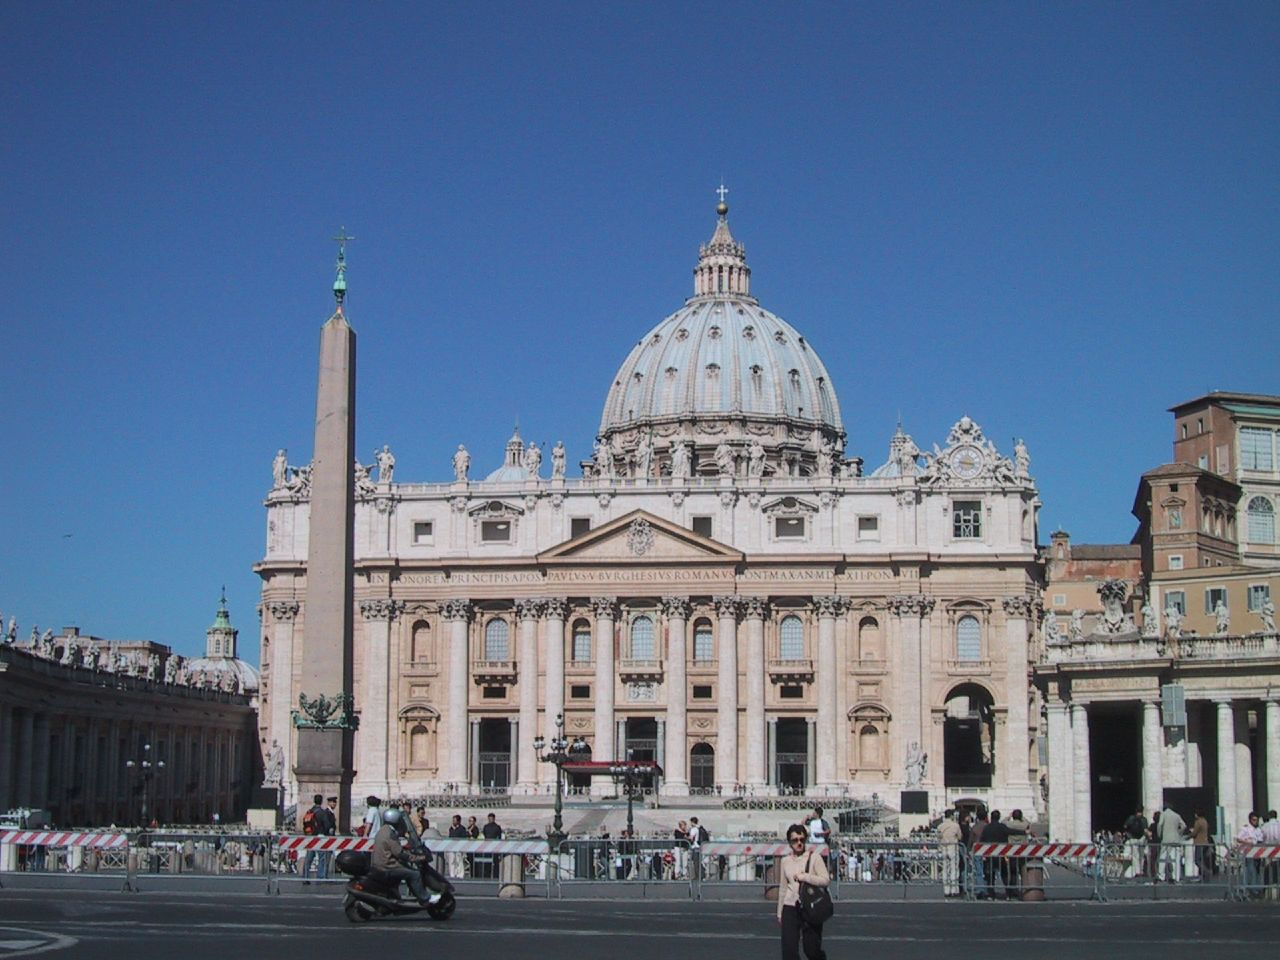 St Peters Basilica http://commons.wikimedia.org/wiki/File:St_Peters_Basilica.jpg